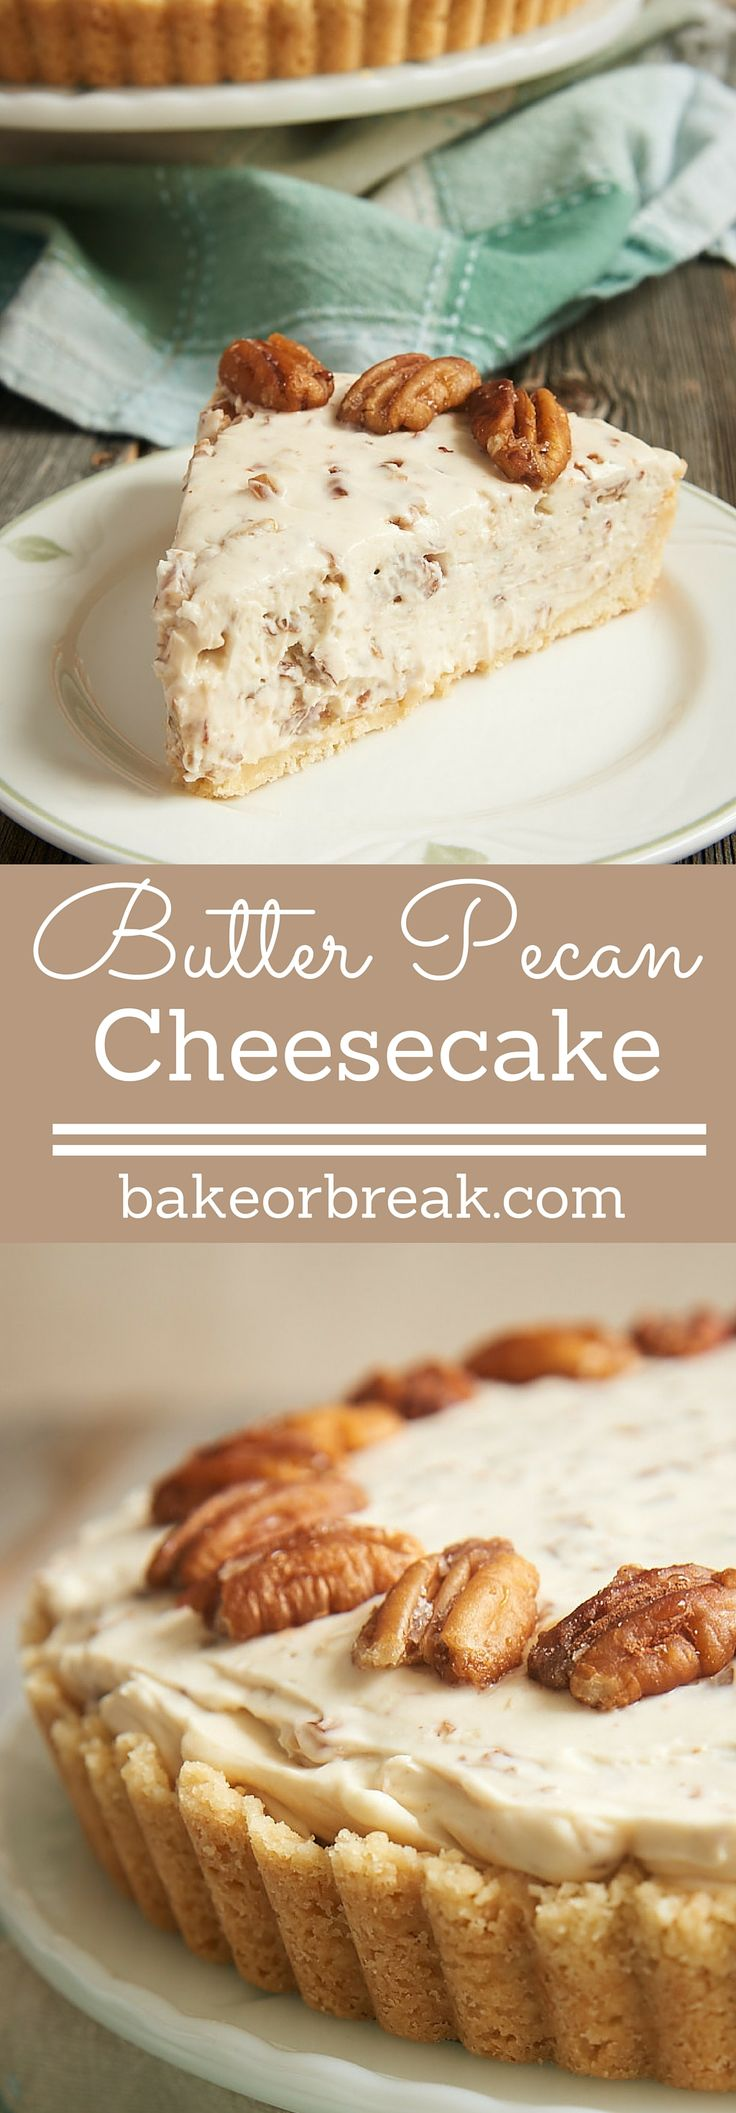 If butter pecan is your favorite ice cream, then this Butter Pecan Cheesecake may very well be your favorite cheesecake!